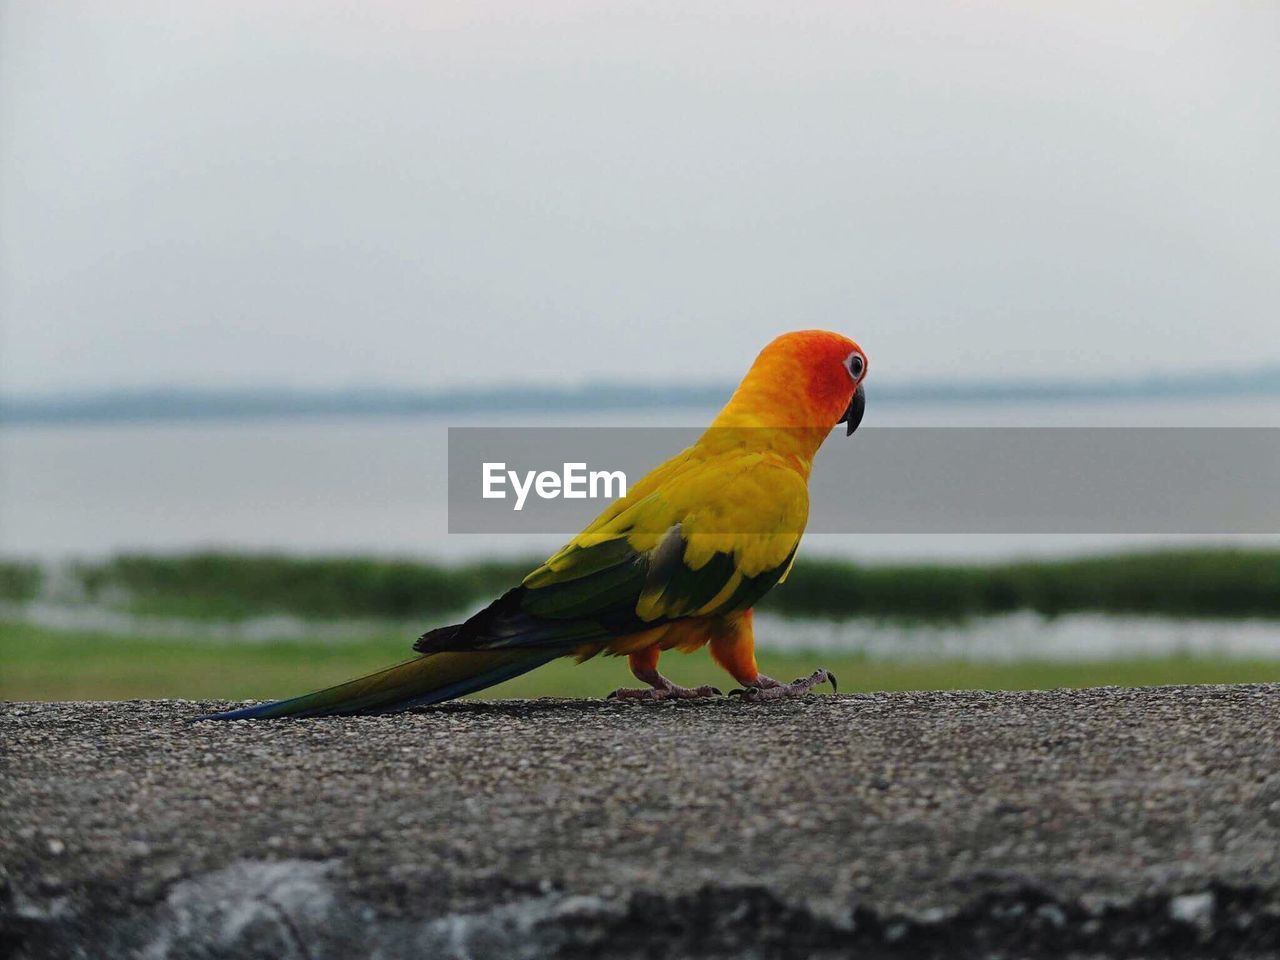 vertebrate, bird, animal, animal themes, one animal, animal wildlife, animals in the wild, sky, day, selective focus, no people, nature, perching, parrot, outdoors, full length, transportation, beauty in nature, yellow, close-up